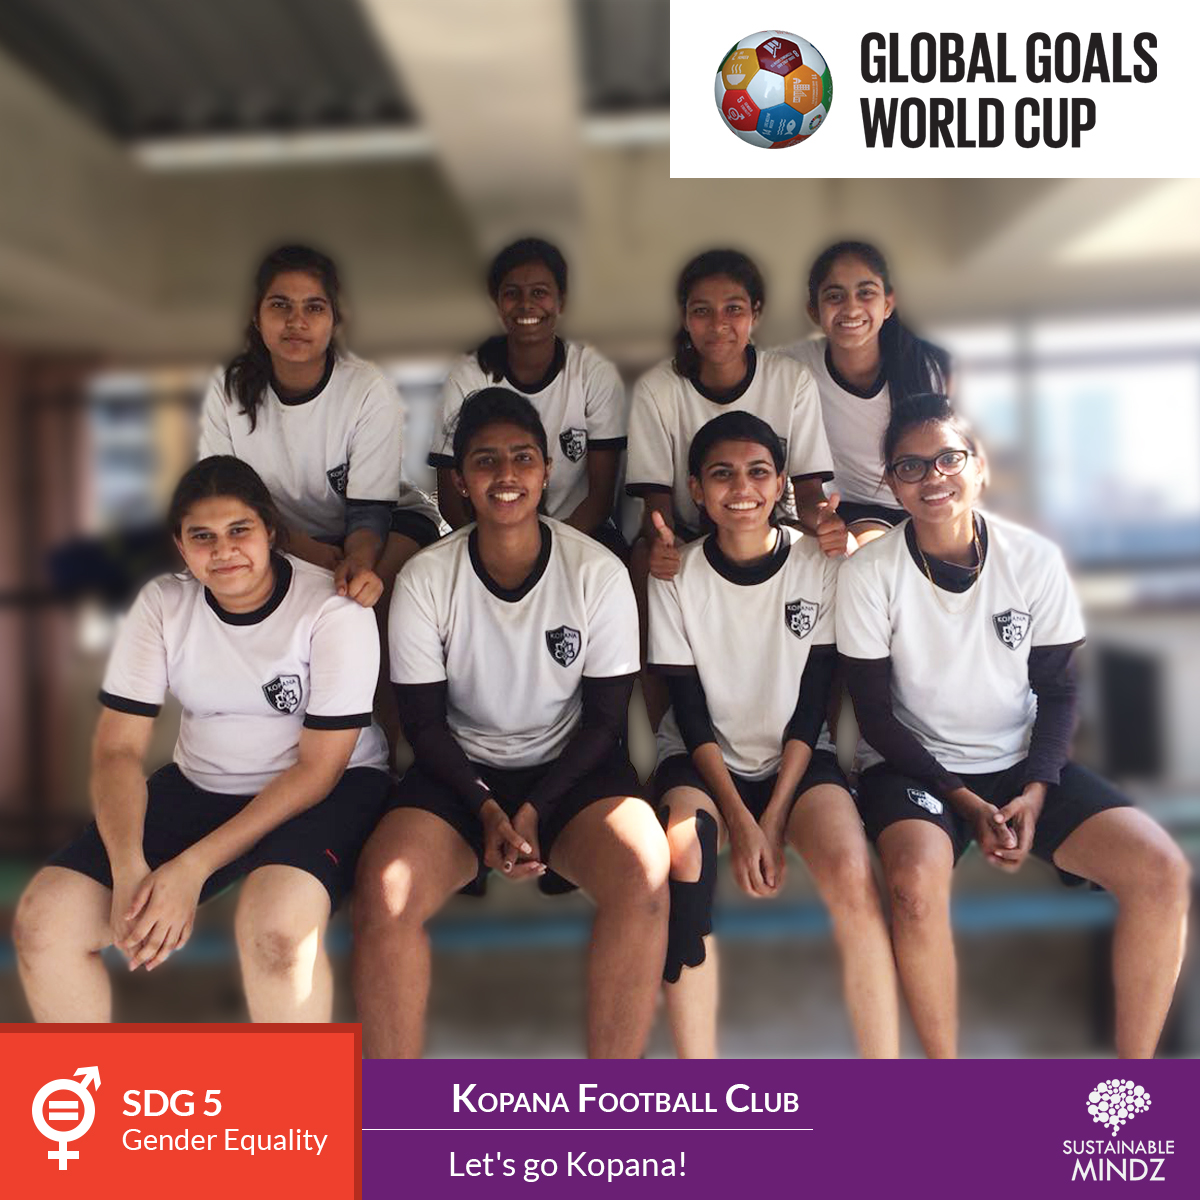 The tagline says it all 'Let's go Kopana!' The latest entrant who will be hoping to take home the accolades is  Kopana Football School . They are playing for Gender Equality and Women Empowerment and we wish them the very best for accomplishing their goals.